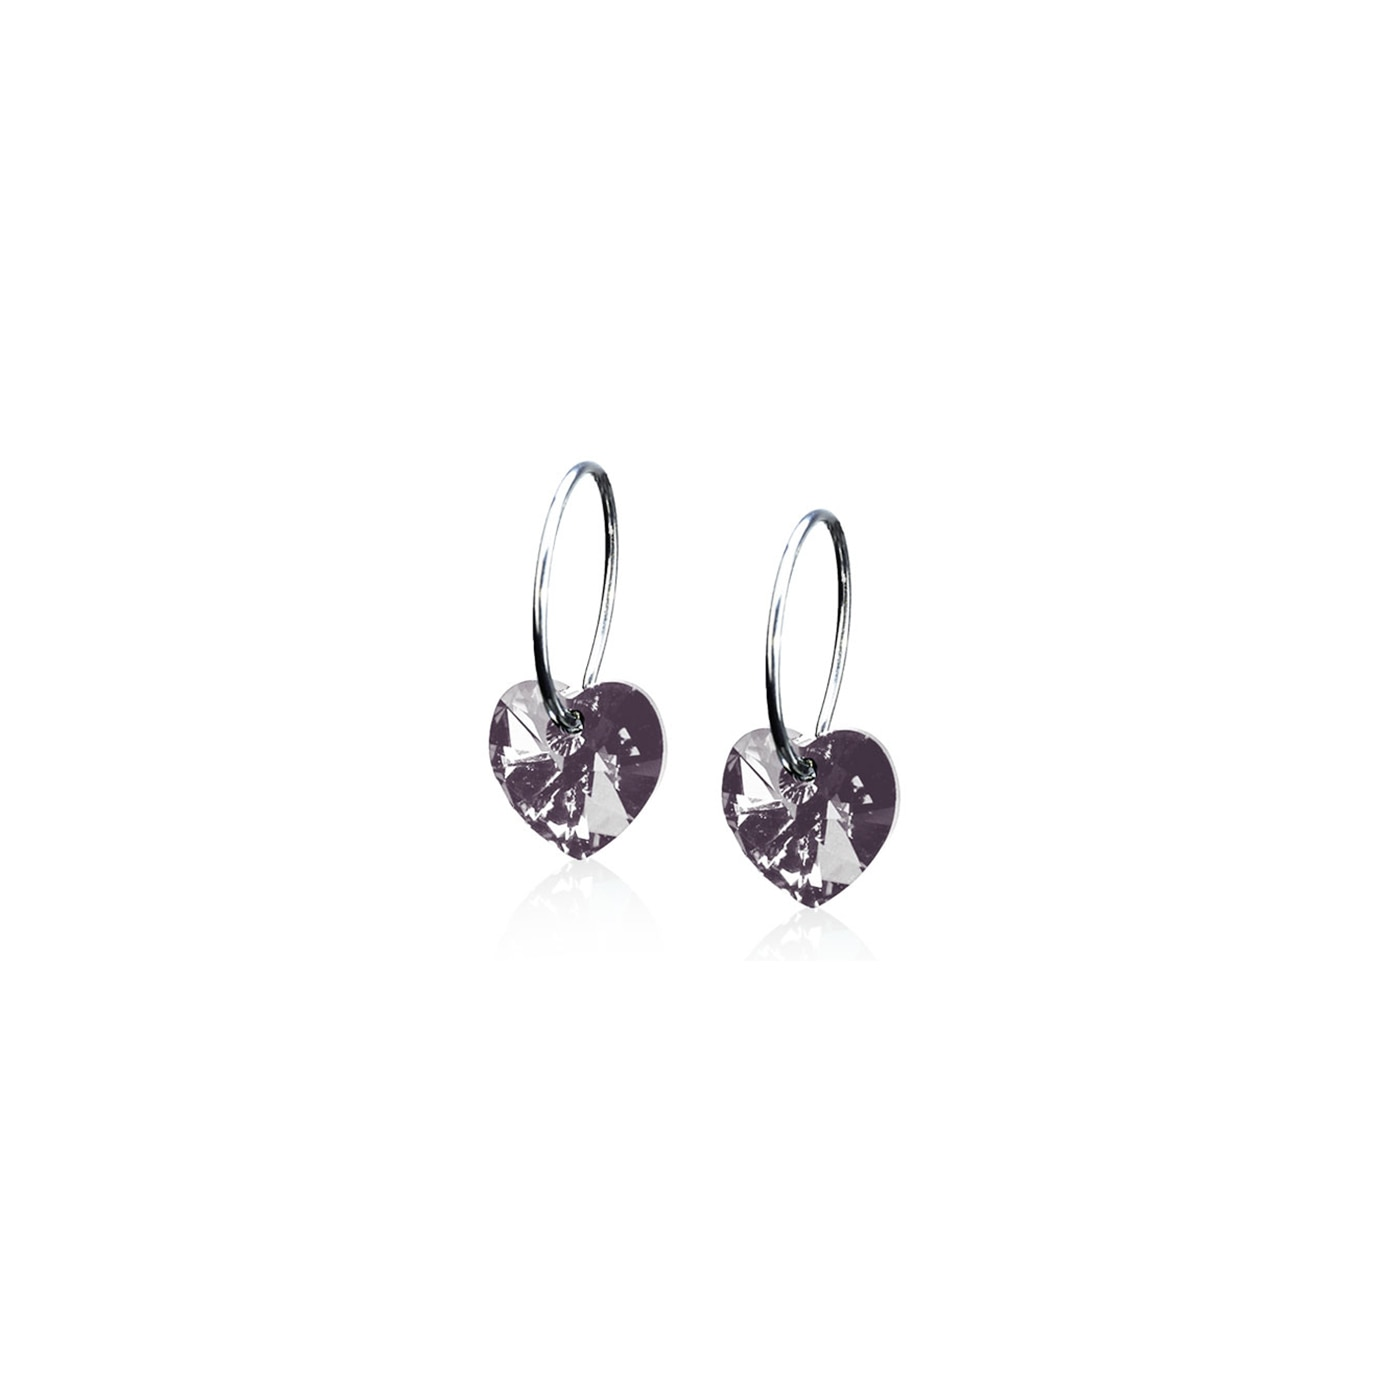 NT Heart 10 mm, Black diamond